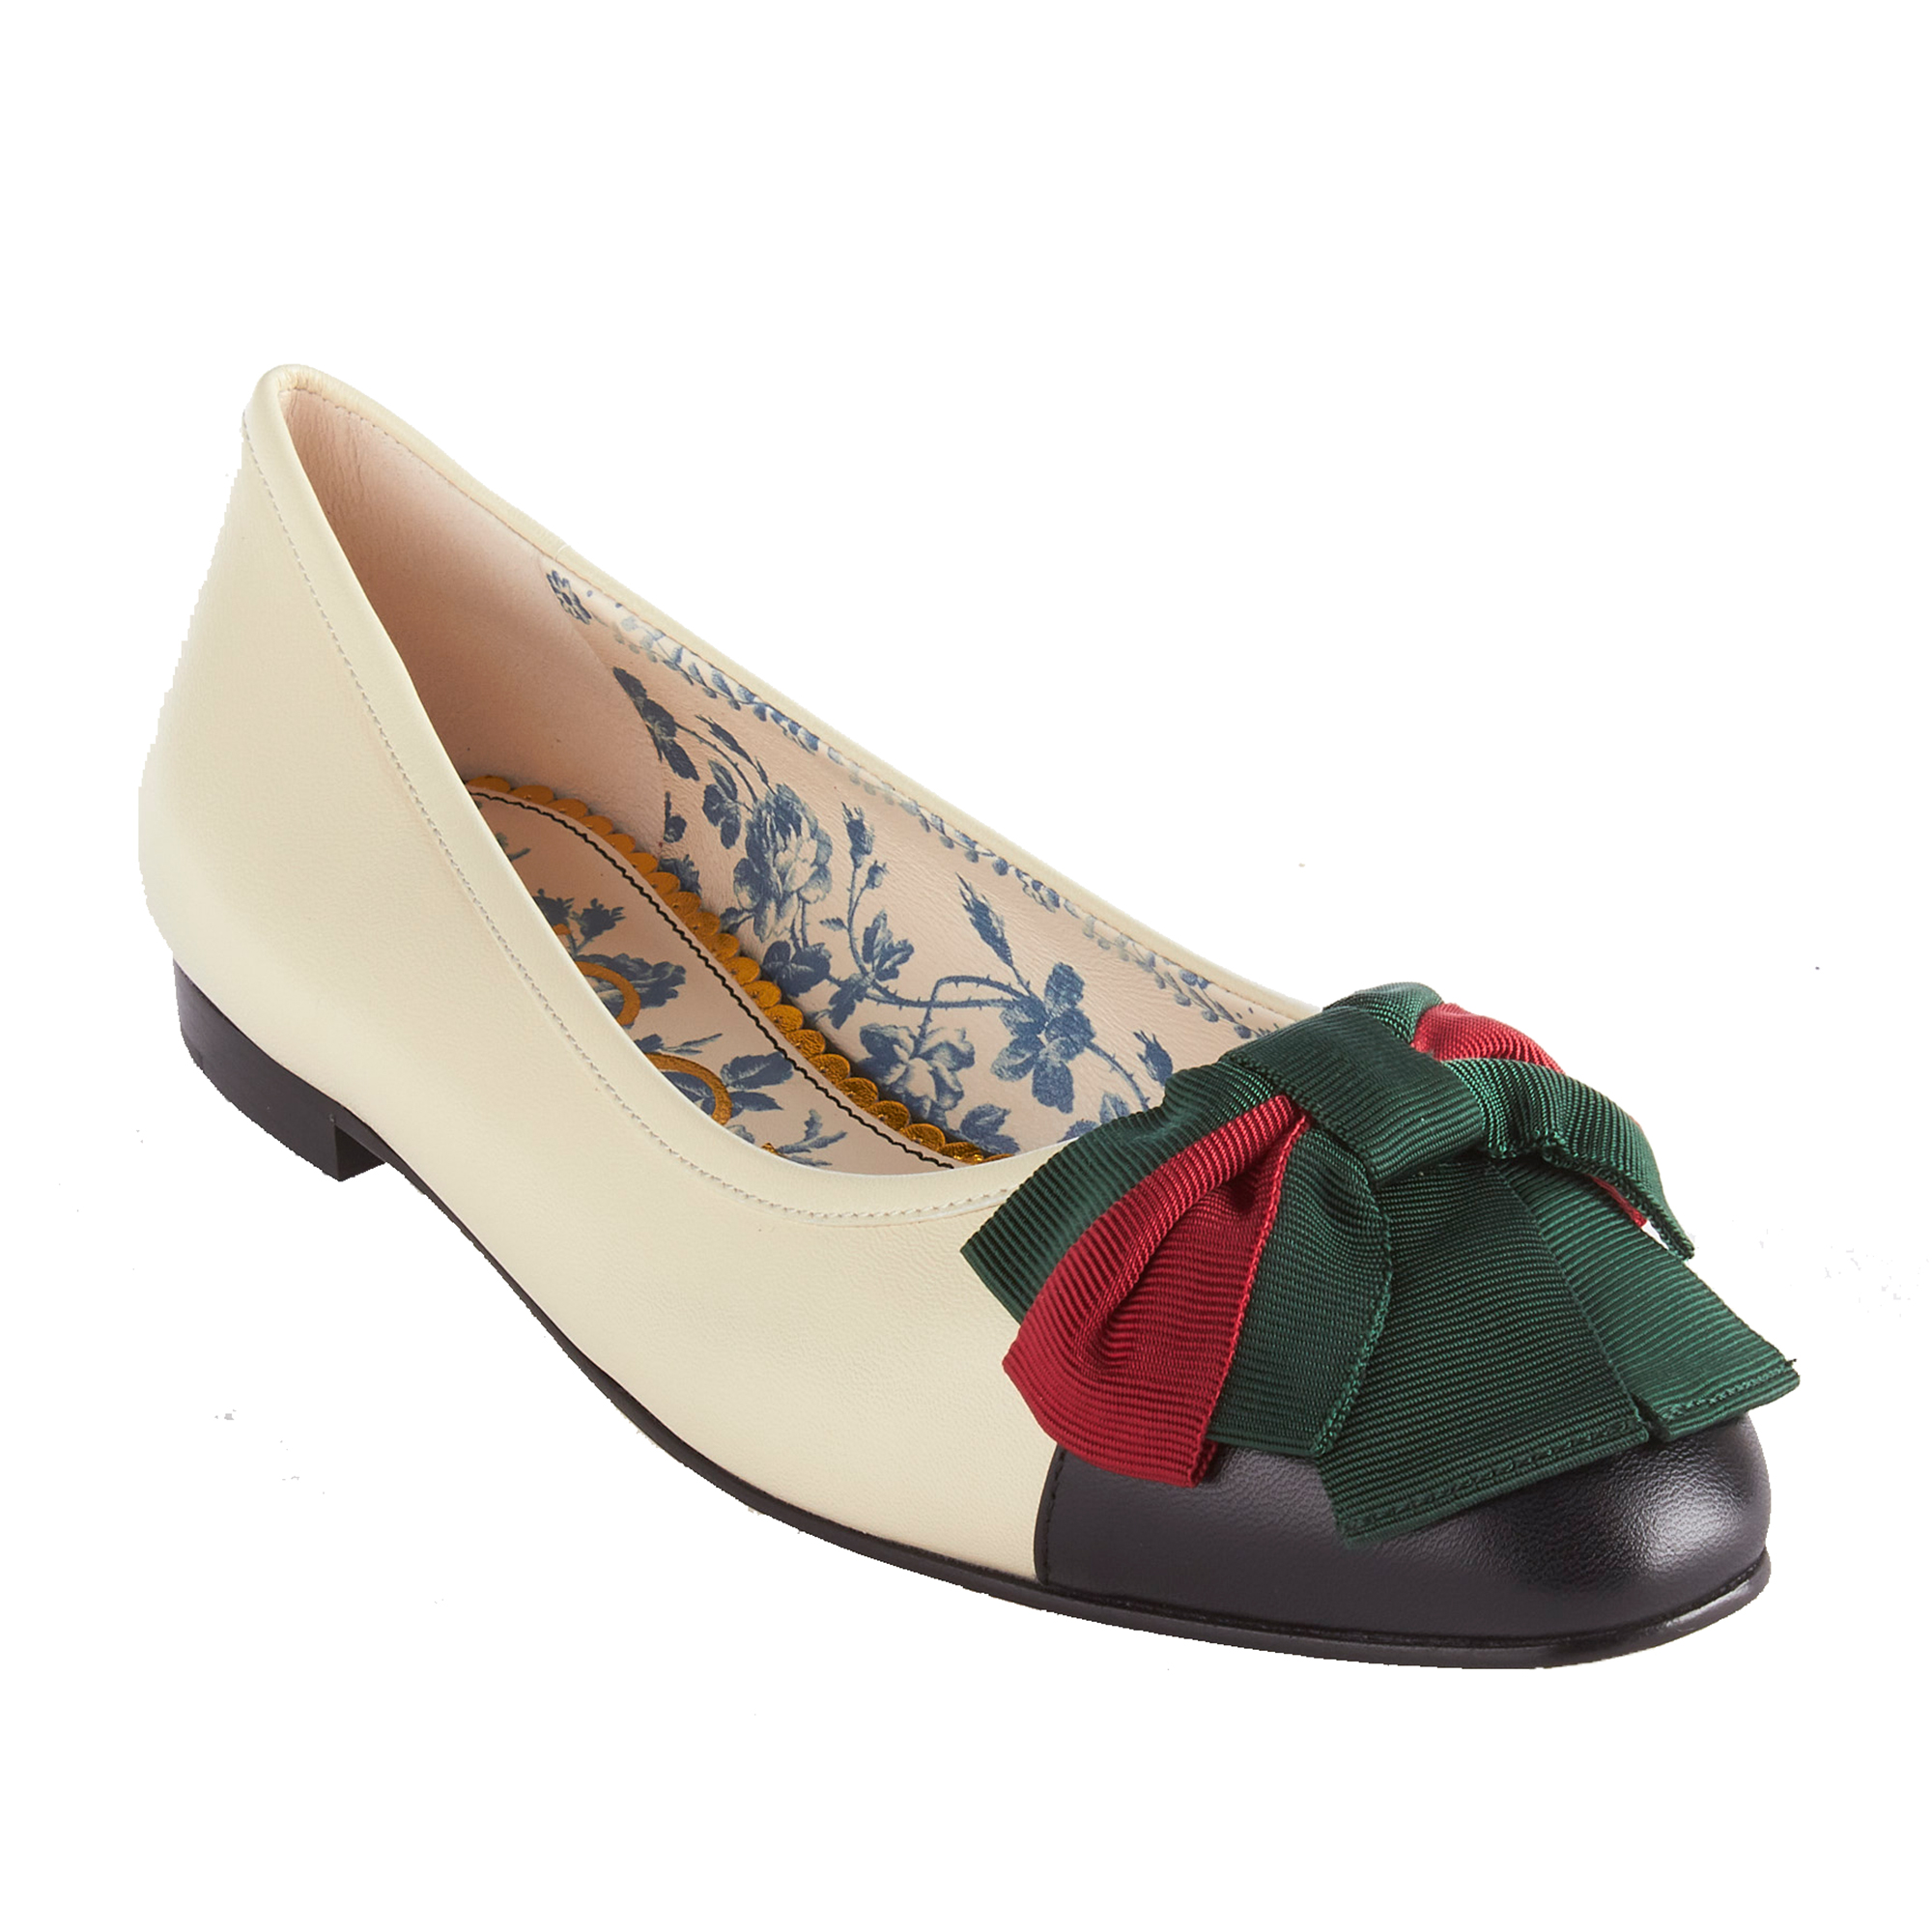 "Black and vintage white leather-Green and red Web grosgrain bow-Blue rosebuds and Gucci print leather lining.5"" height-Made in Italy"